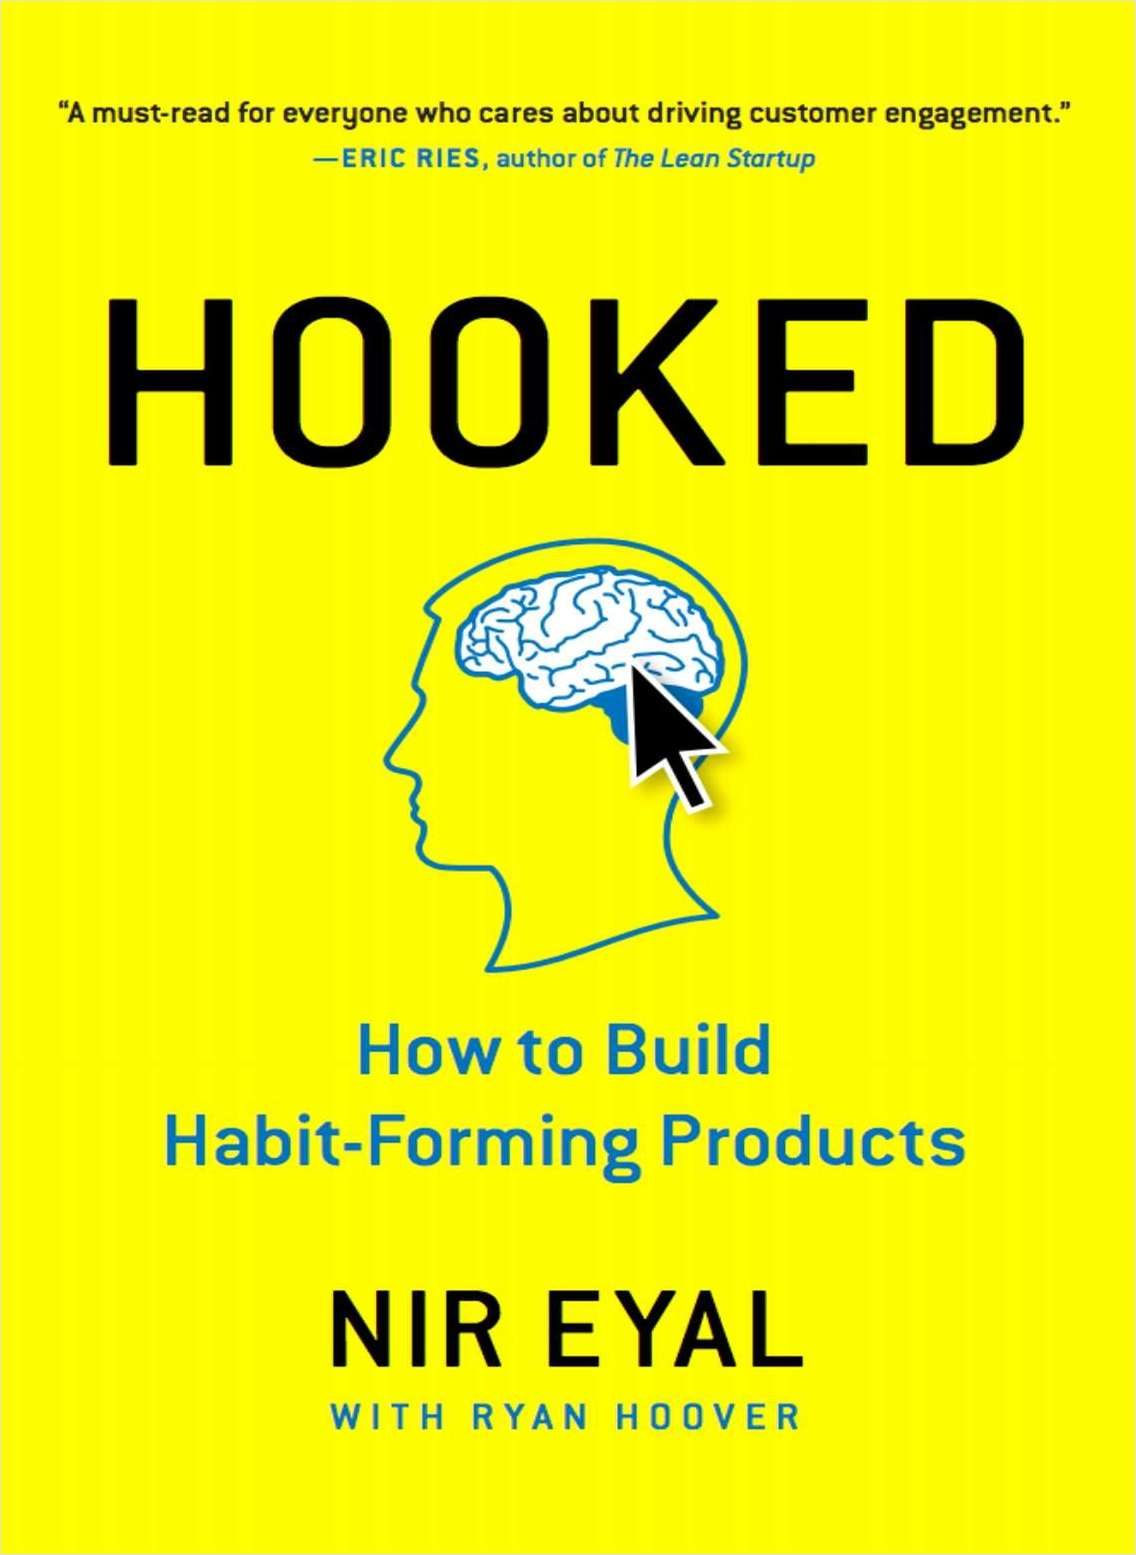 Hooked: How to Build Habit-Forming Products (An Excerpt)